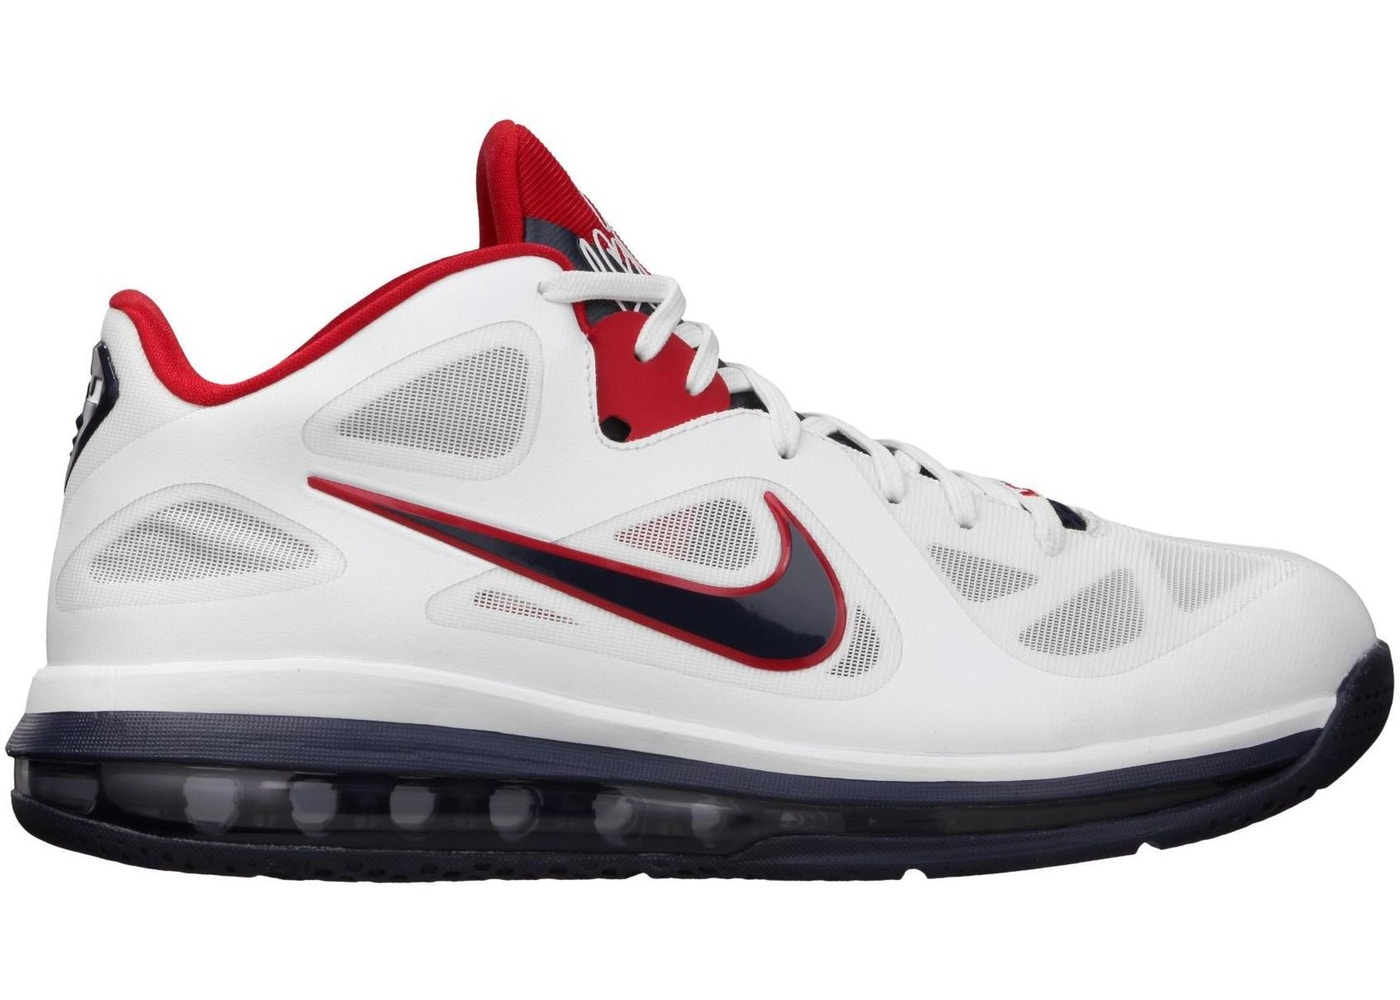 los angeles 05a91 ca35d Nike LeBron 9 Shoes - Average Sale Price